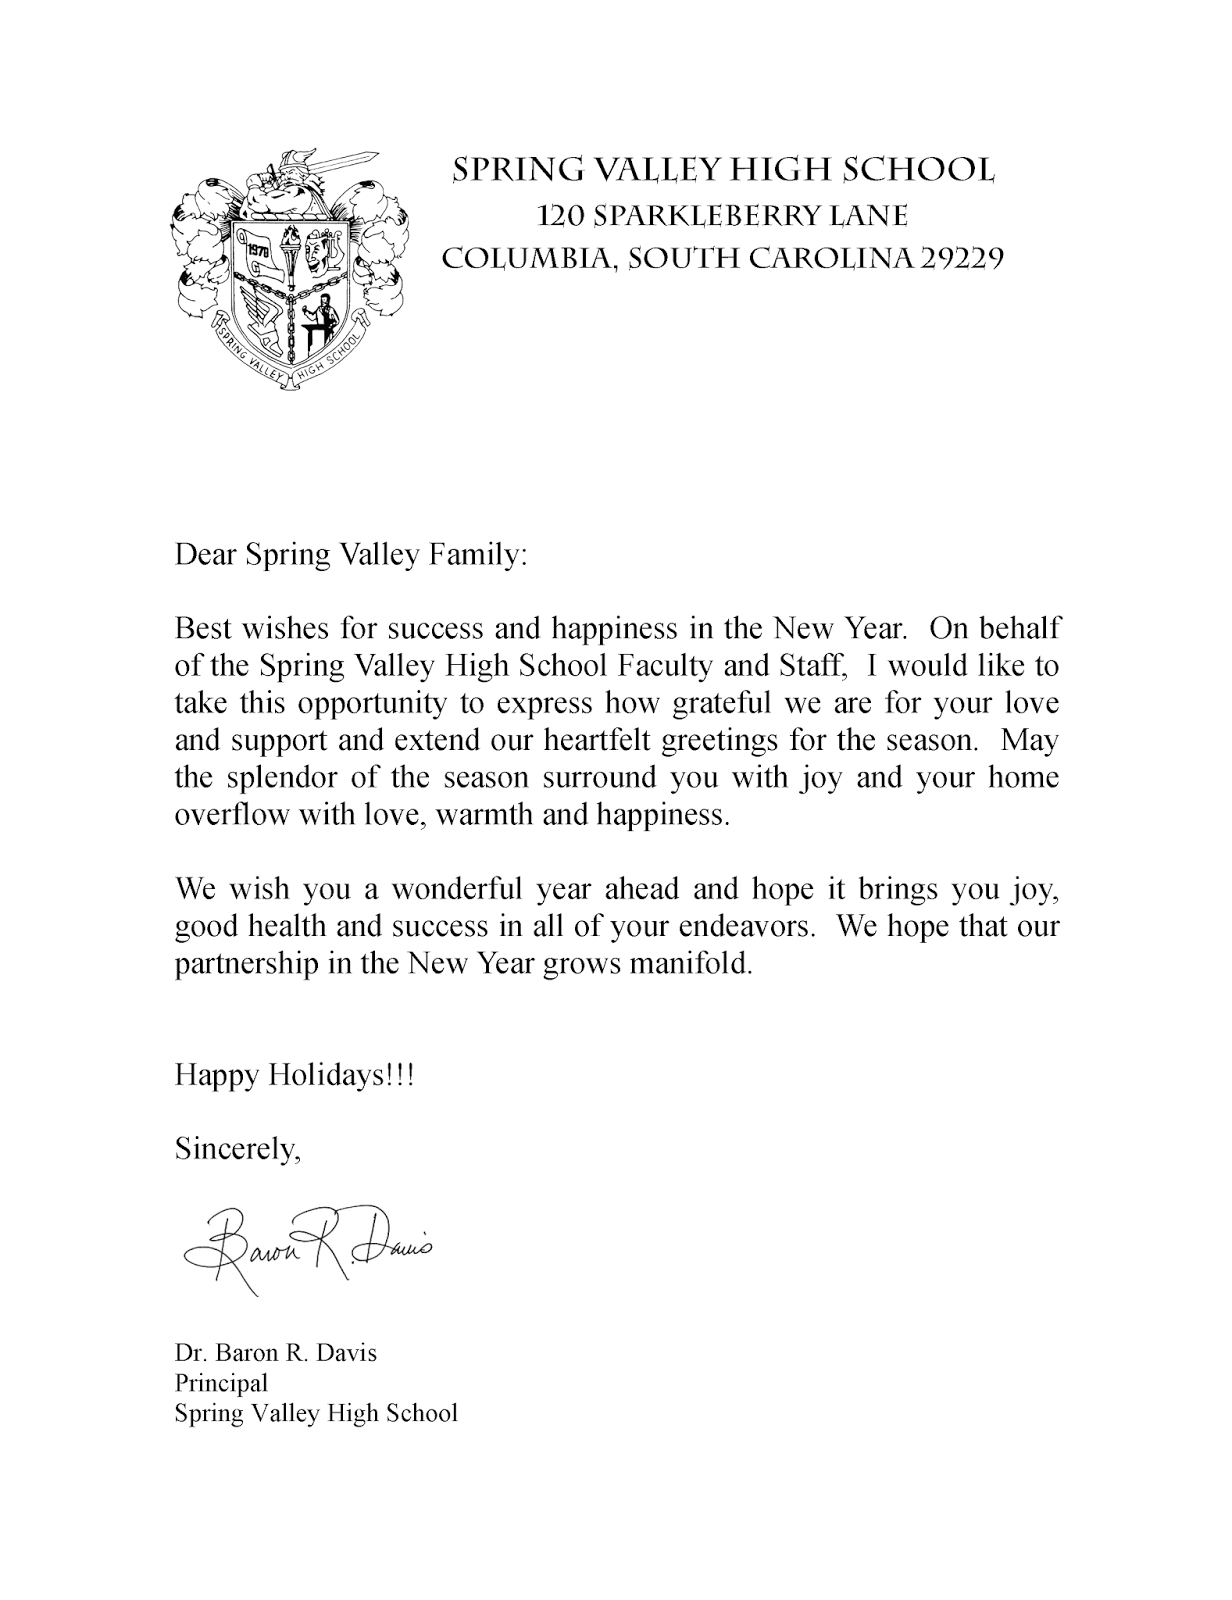 Viking update december 2013 holiday letter from dr davis kristyandbryce Gallery